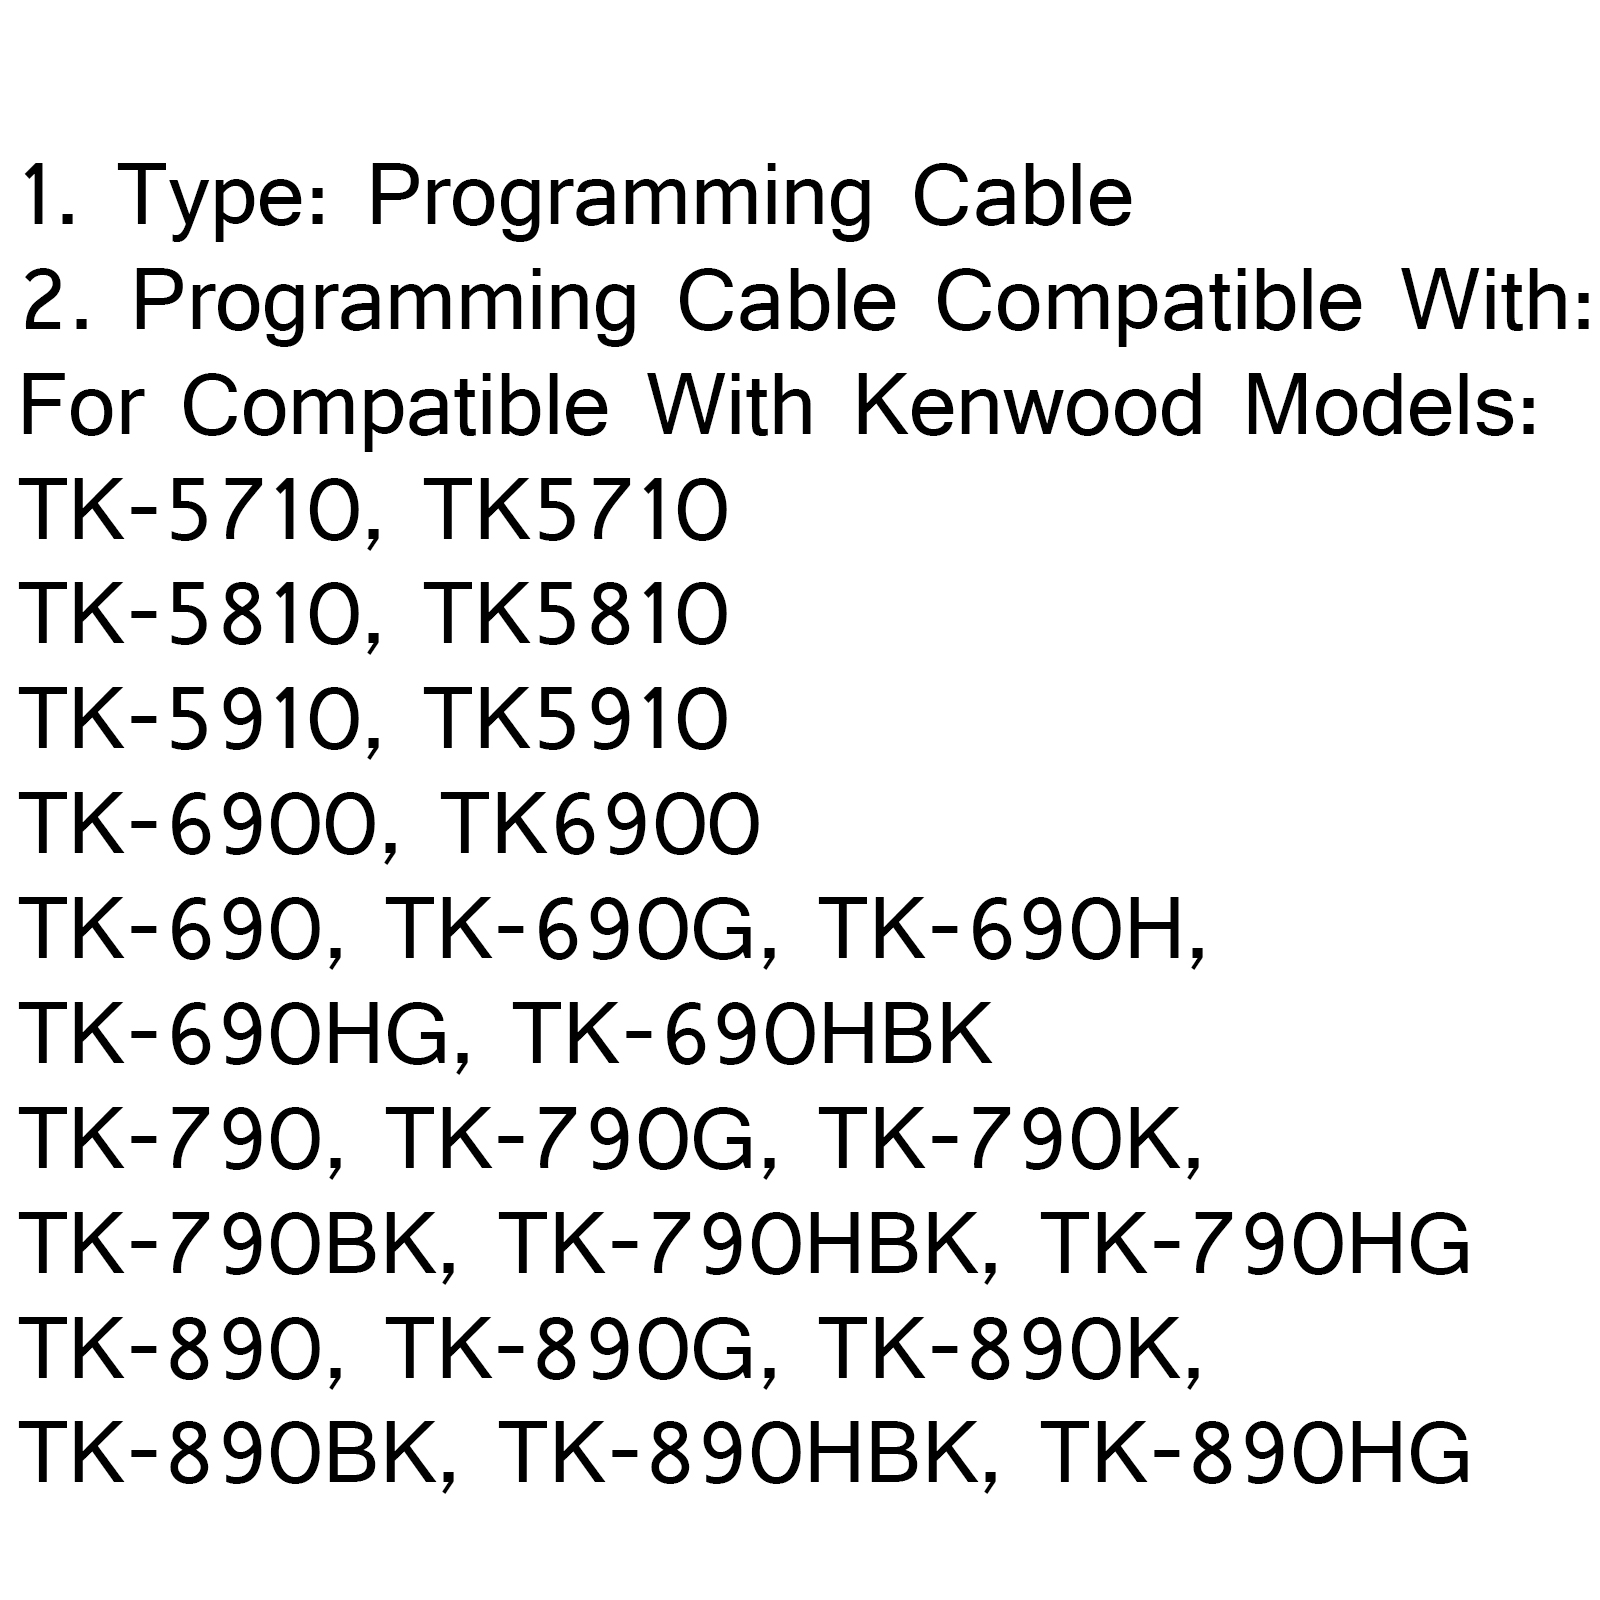 5xProgramming Cable For Kenwood Round TK-690H/G TK-890